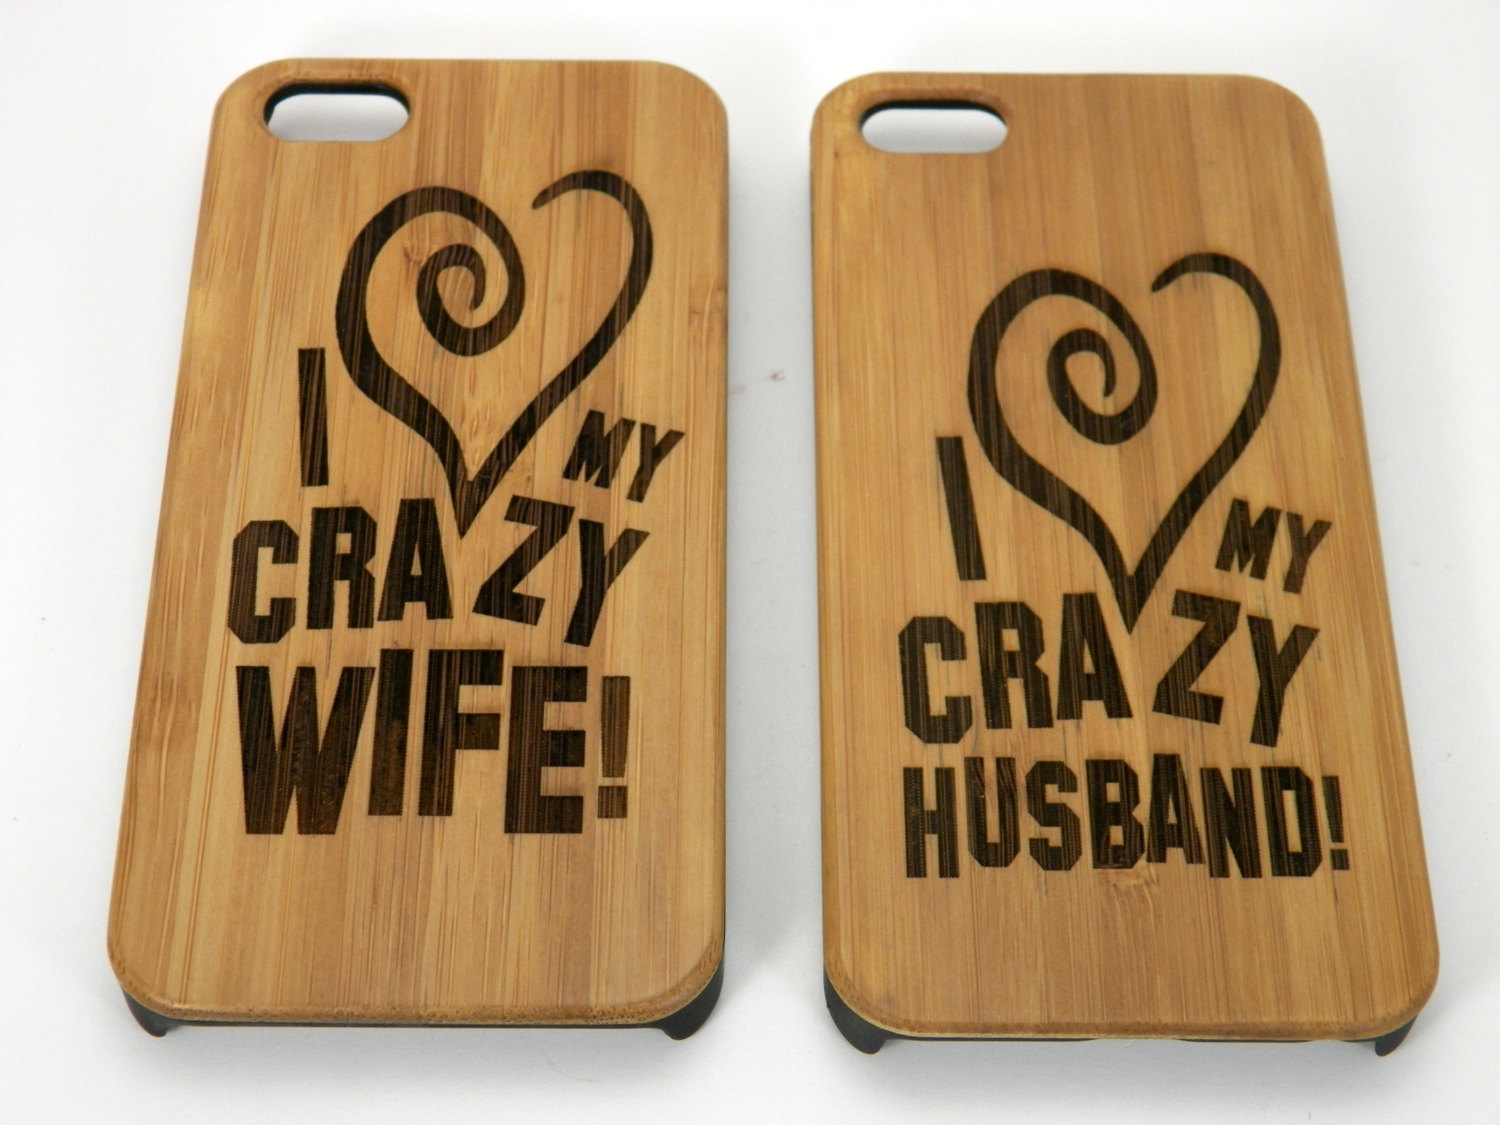 Online Gift For Husband On Wedding Night : Crazy Husband & Wife iPhone 5 5S Case Gift Set. Bamboo Wood Cover Skin ...